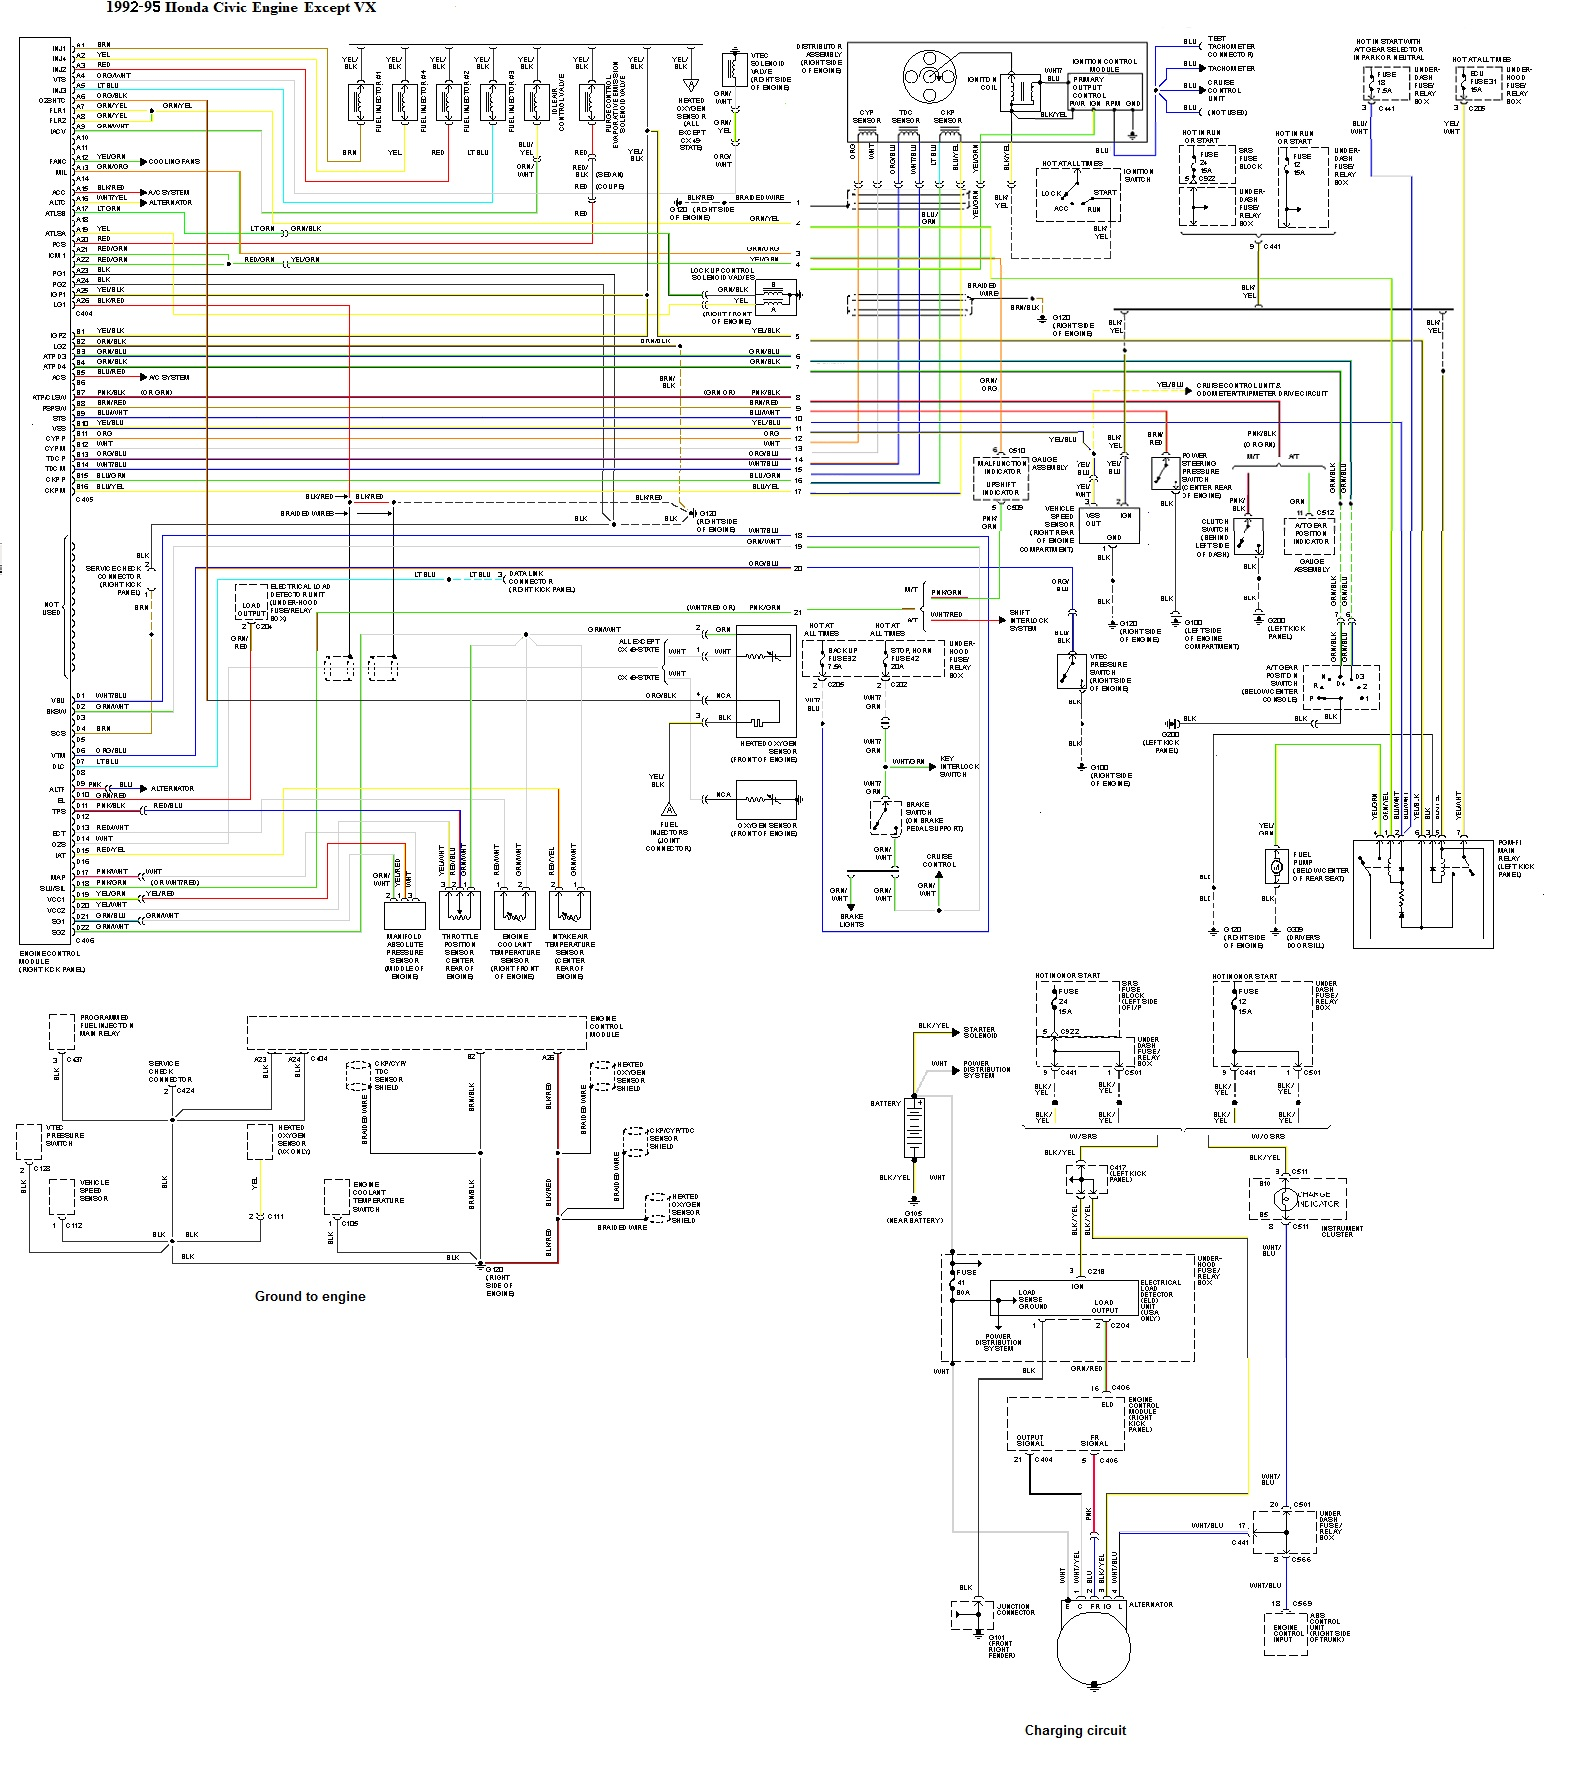 Wiring diagram d series httpblackworkscarsresourceswiringajacg httpblackworkscarsresourceswiringajgaugeg pooptronica Image collections